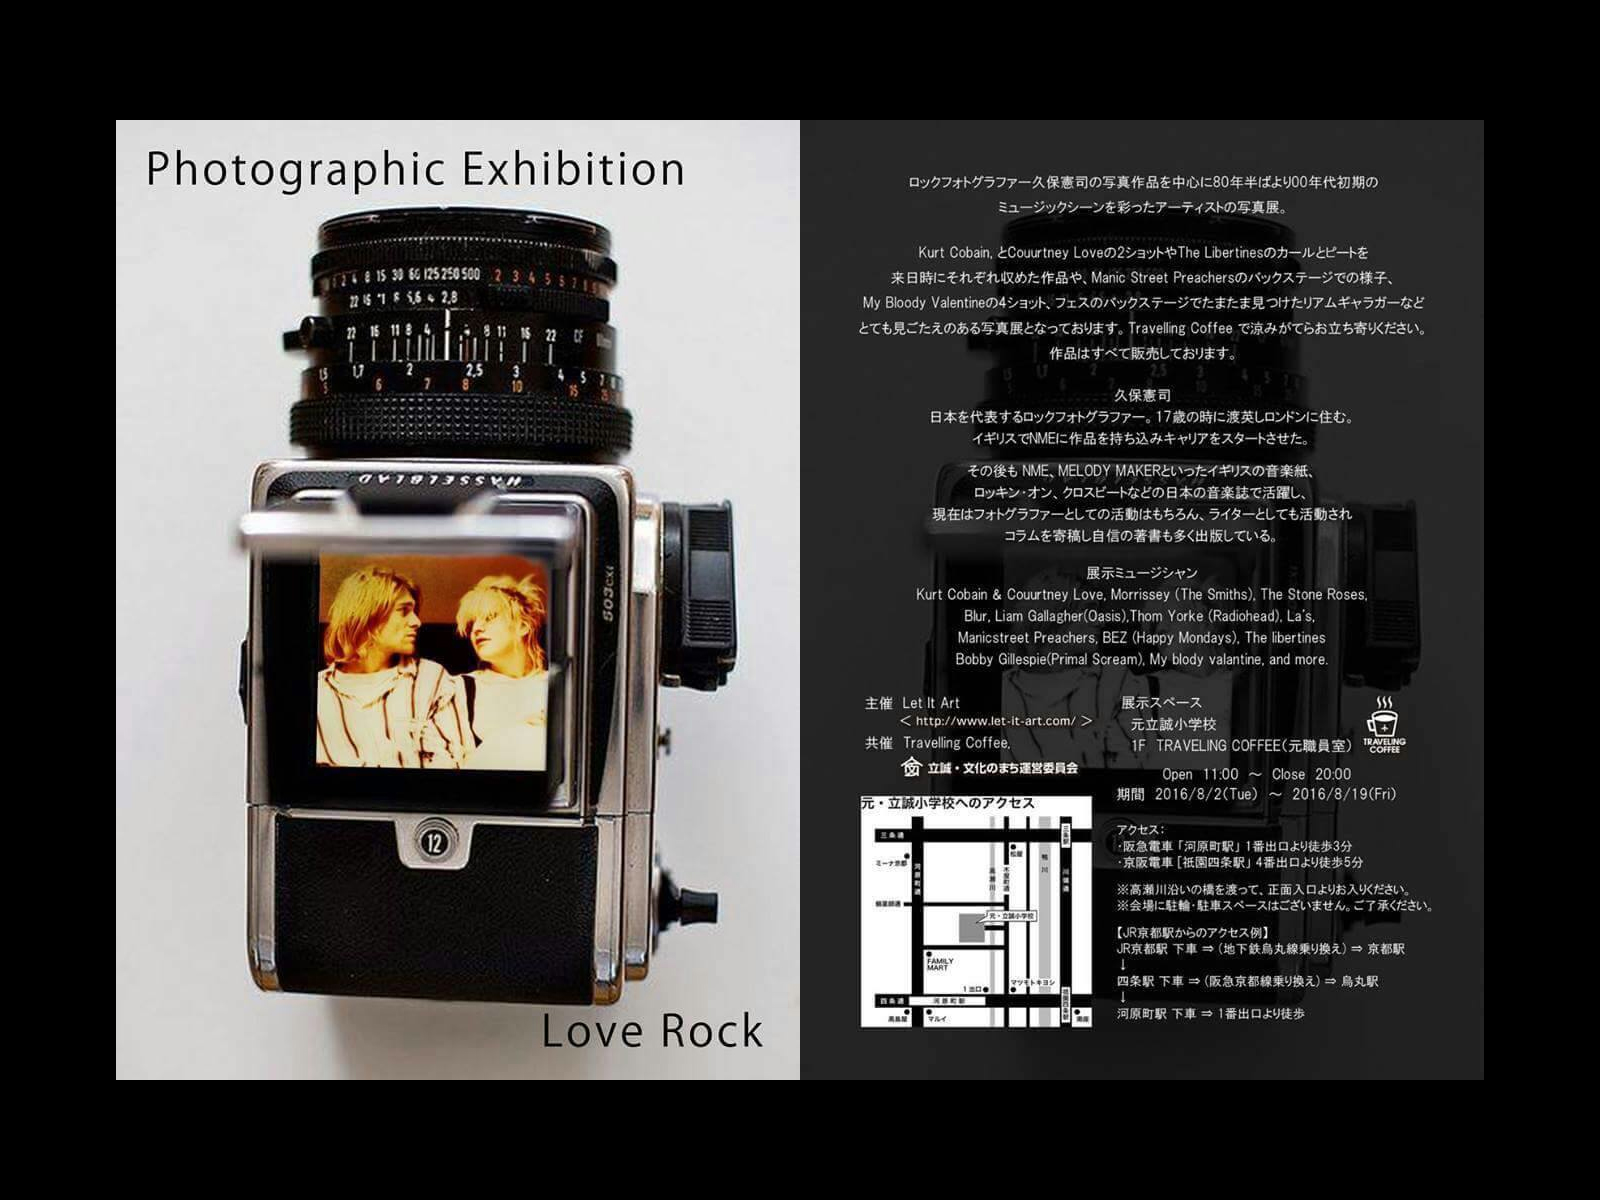 Photographic Exhibition Love Rock